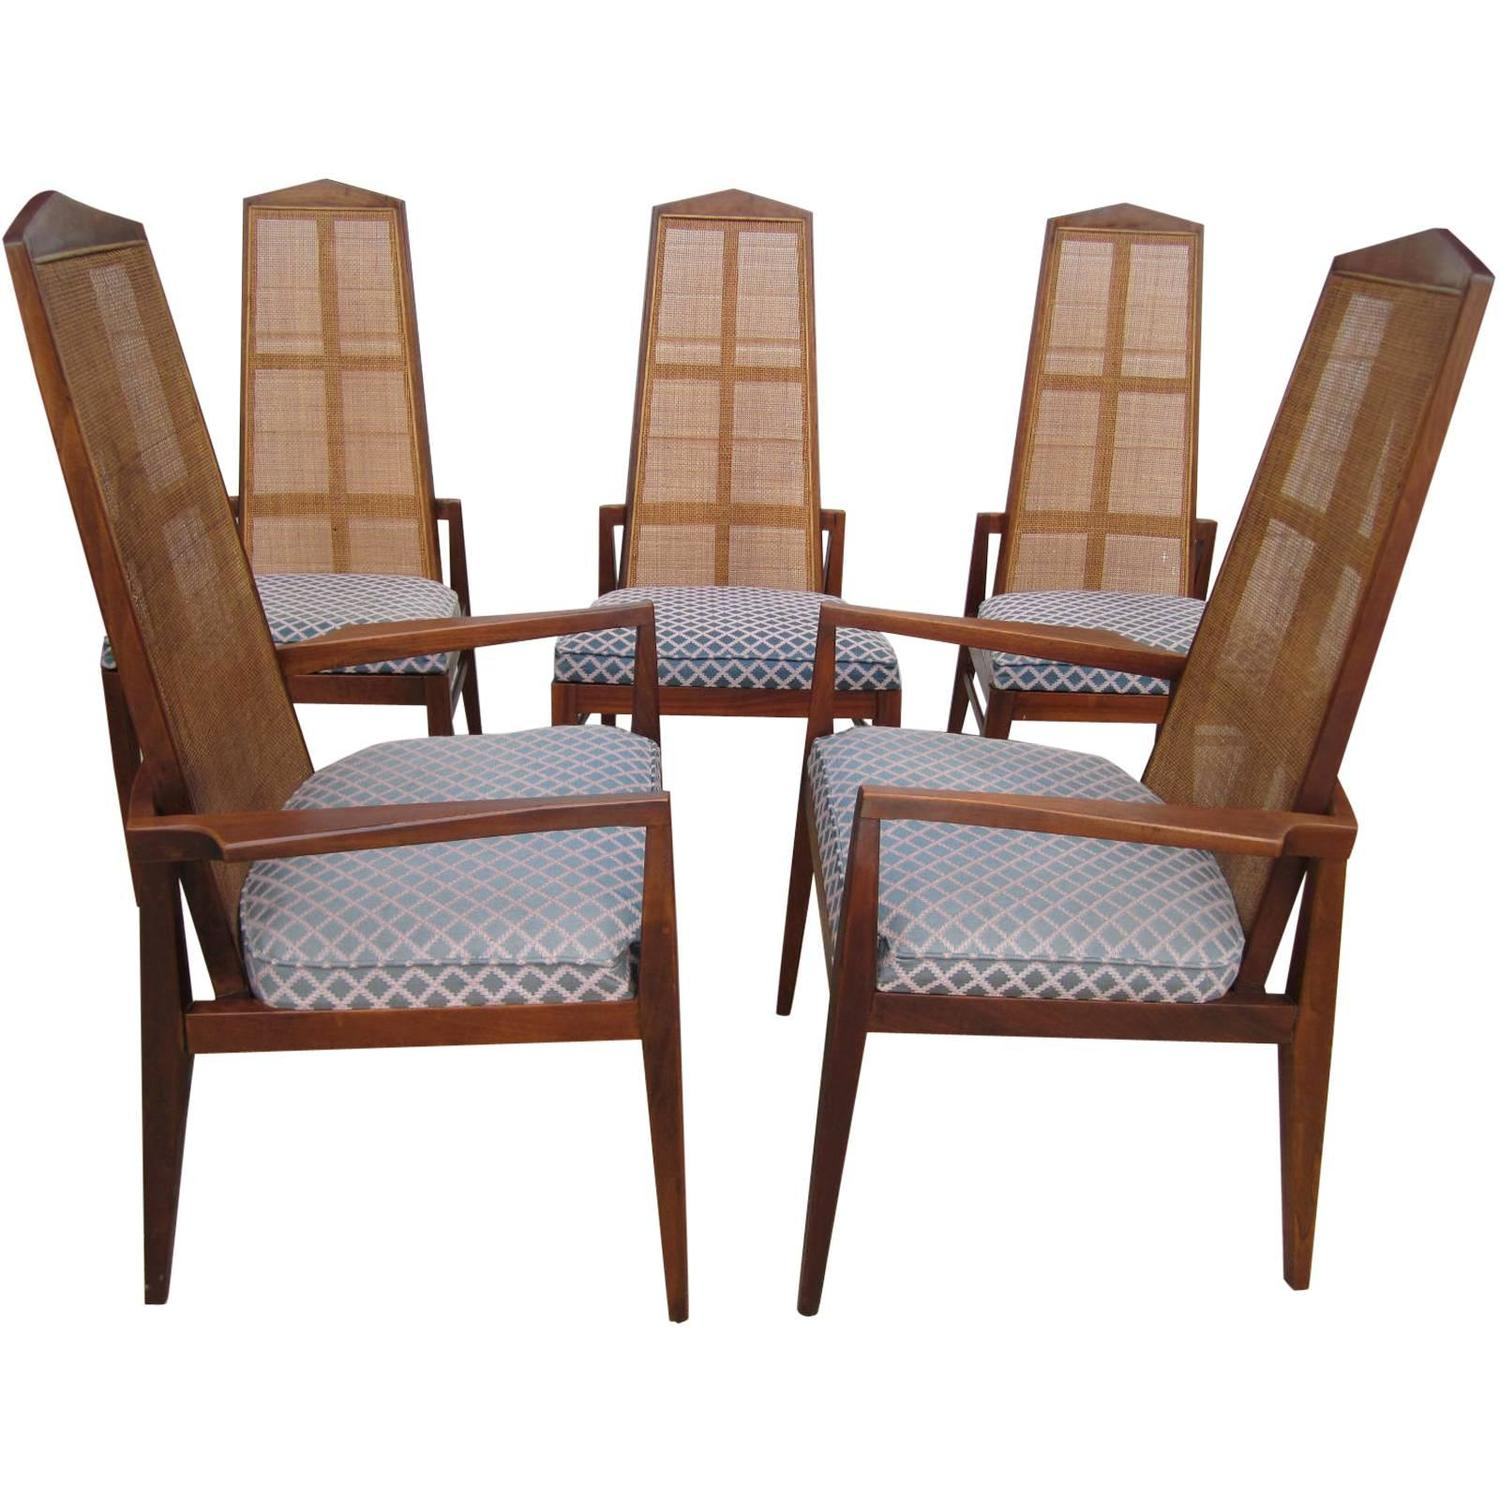 5 Walnut Foster and McDavid Cane Back Dining Chairs Mid Century